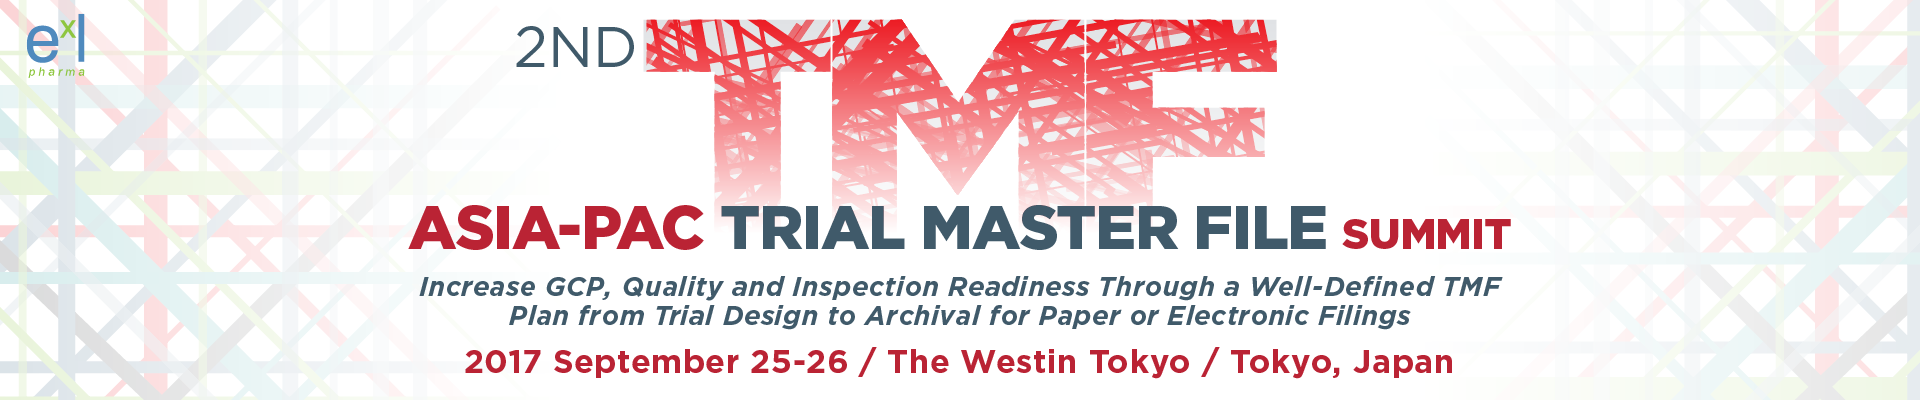 2nd Asia-PAC Trial Master File Summit